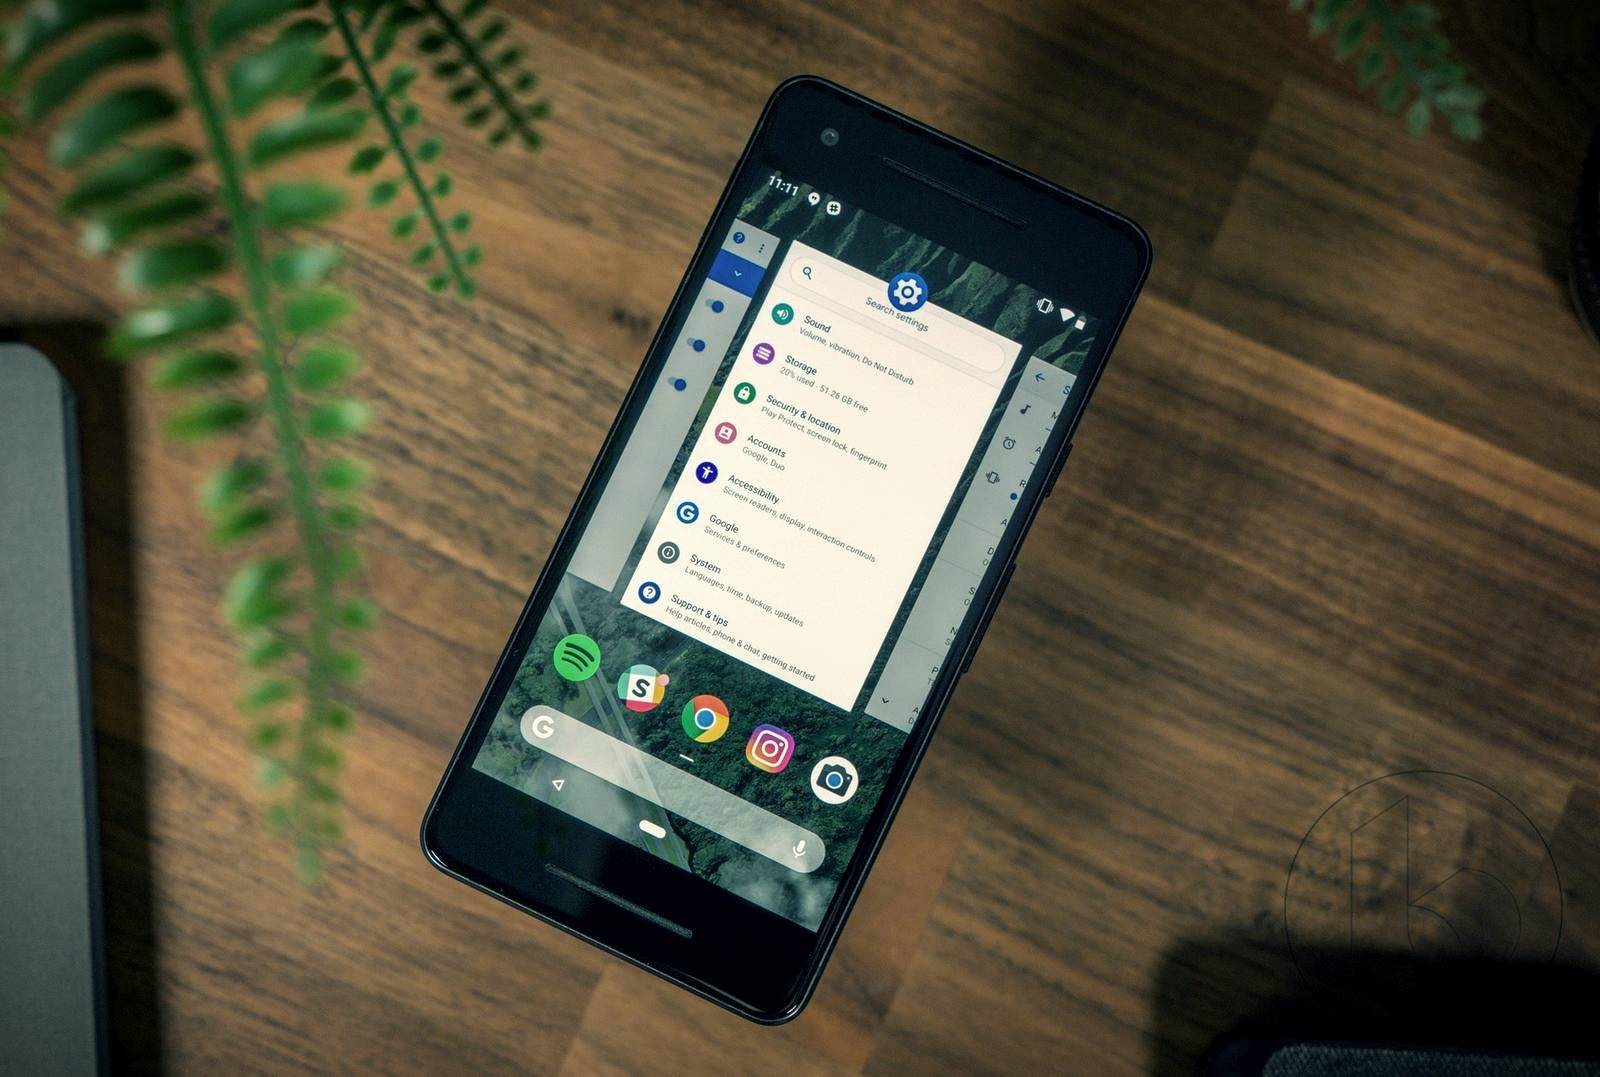 Android files disappear on Android smartphones due to system error